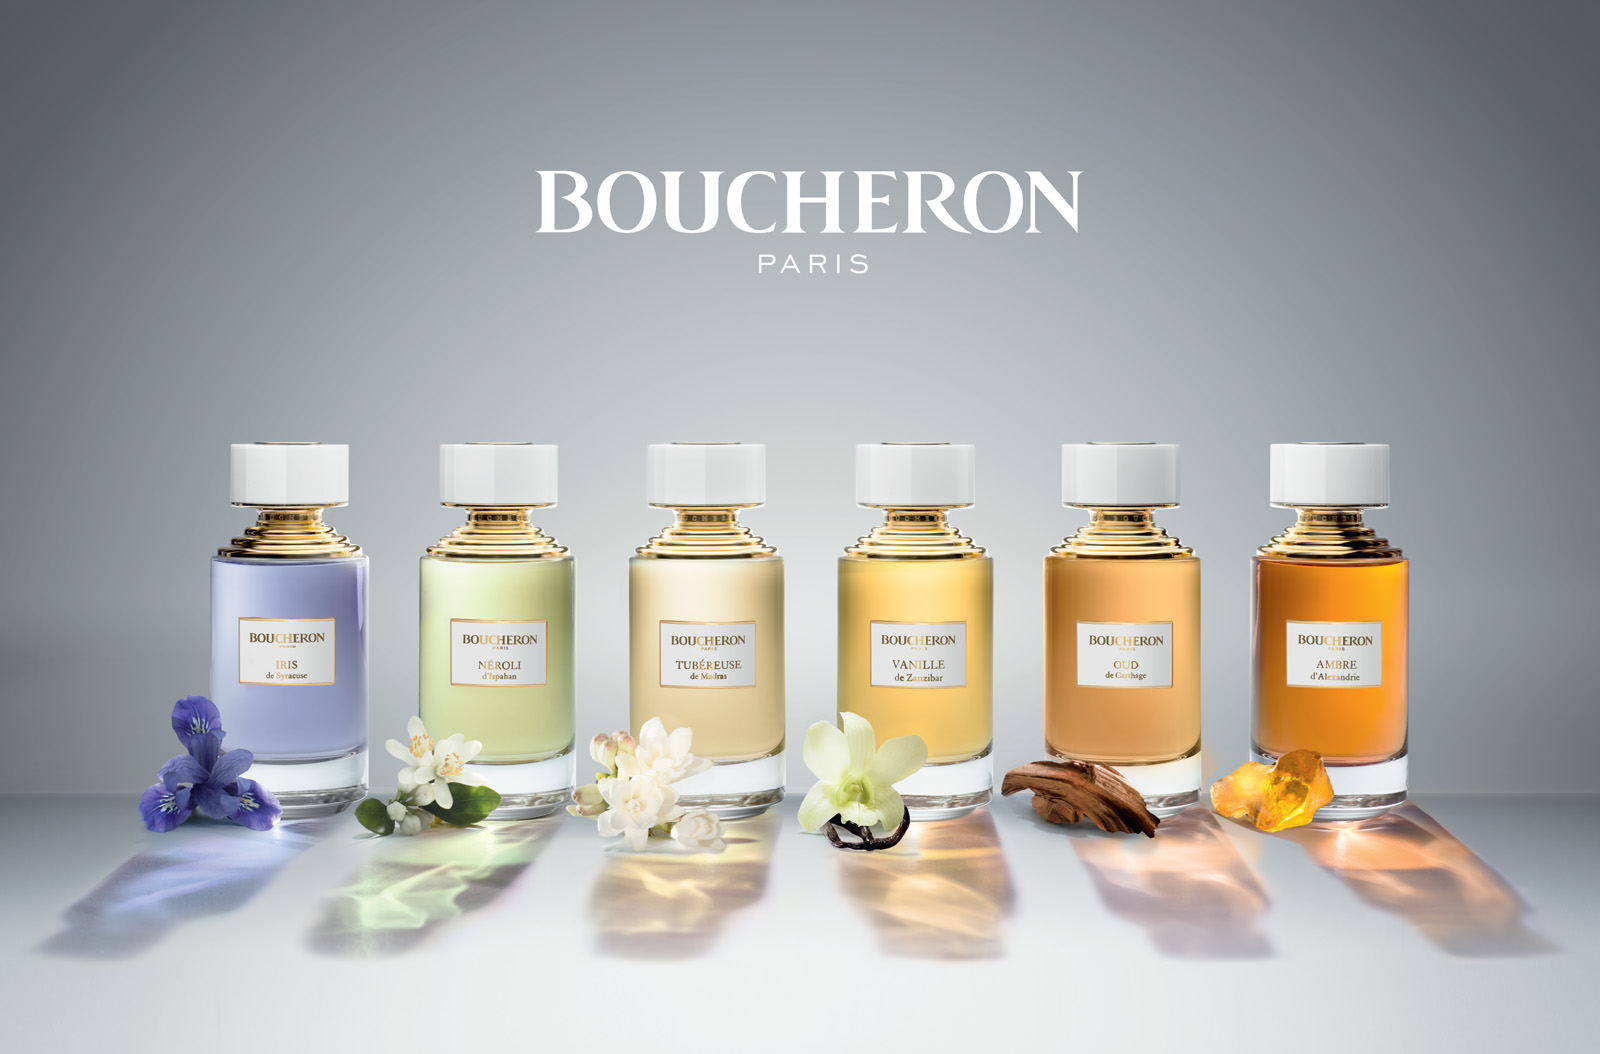 La Nuevas Boucheron ~ Collection Fragancias E2IHD9